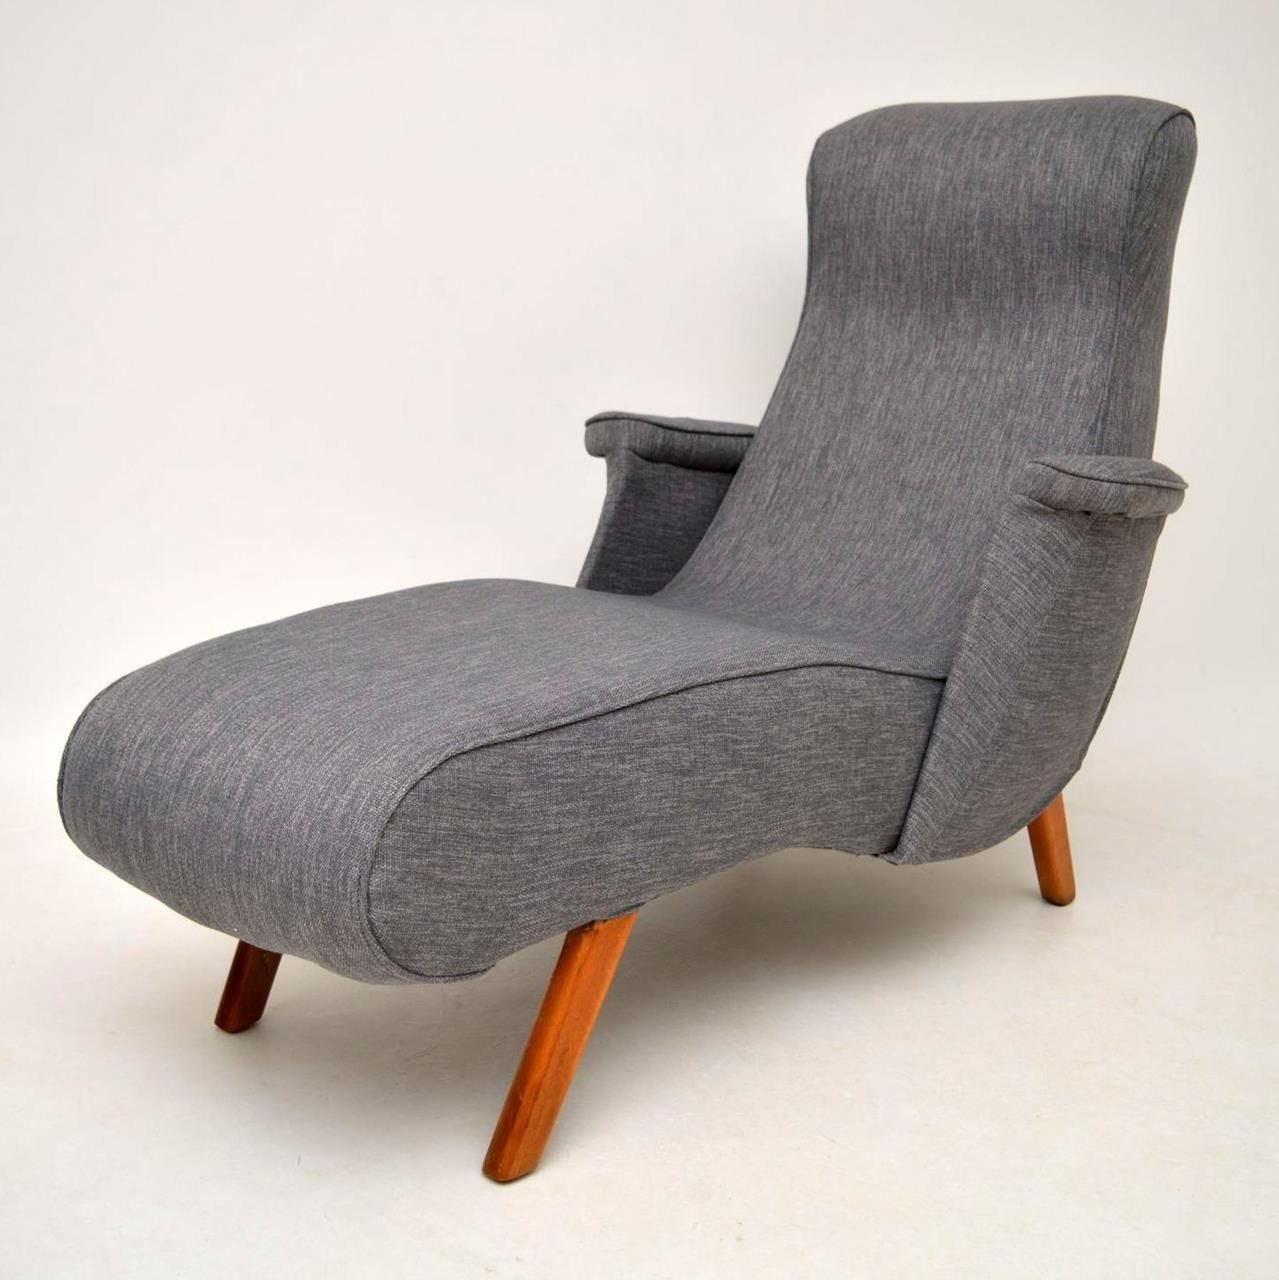 Retro Chaise Lounge Recliner Armchair Vintage 1950s